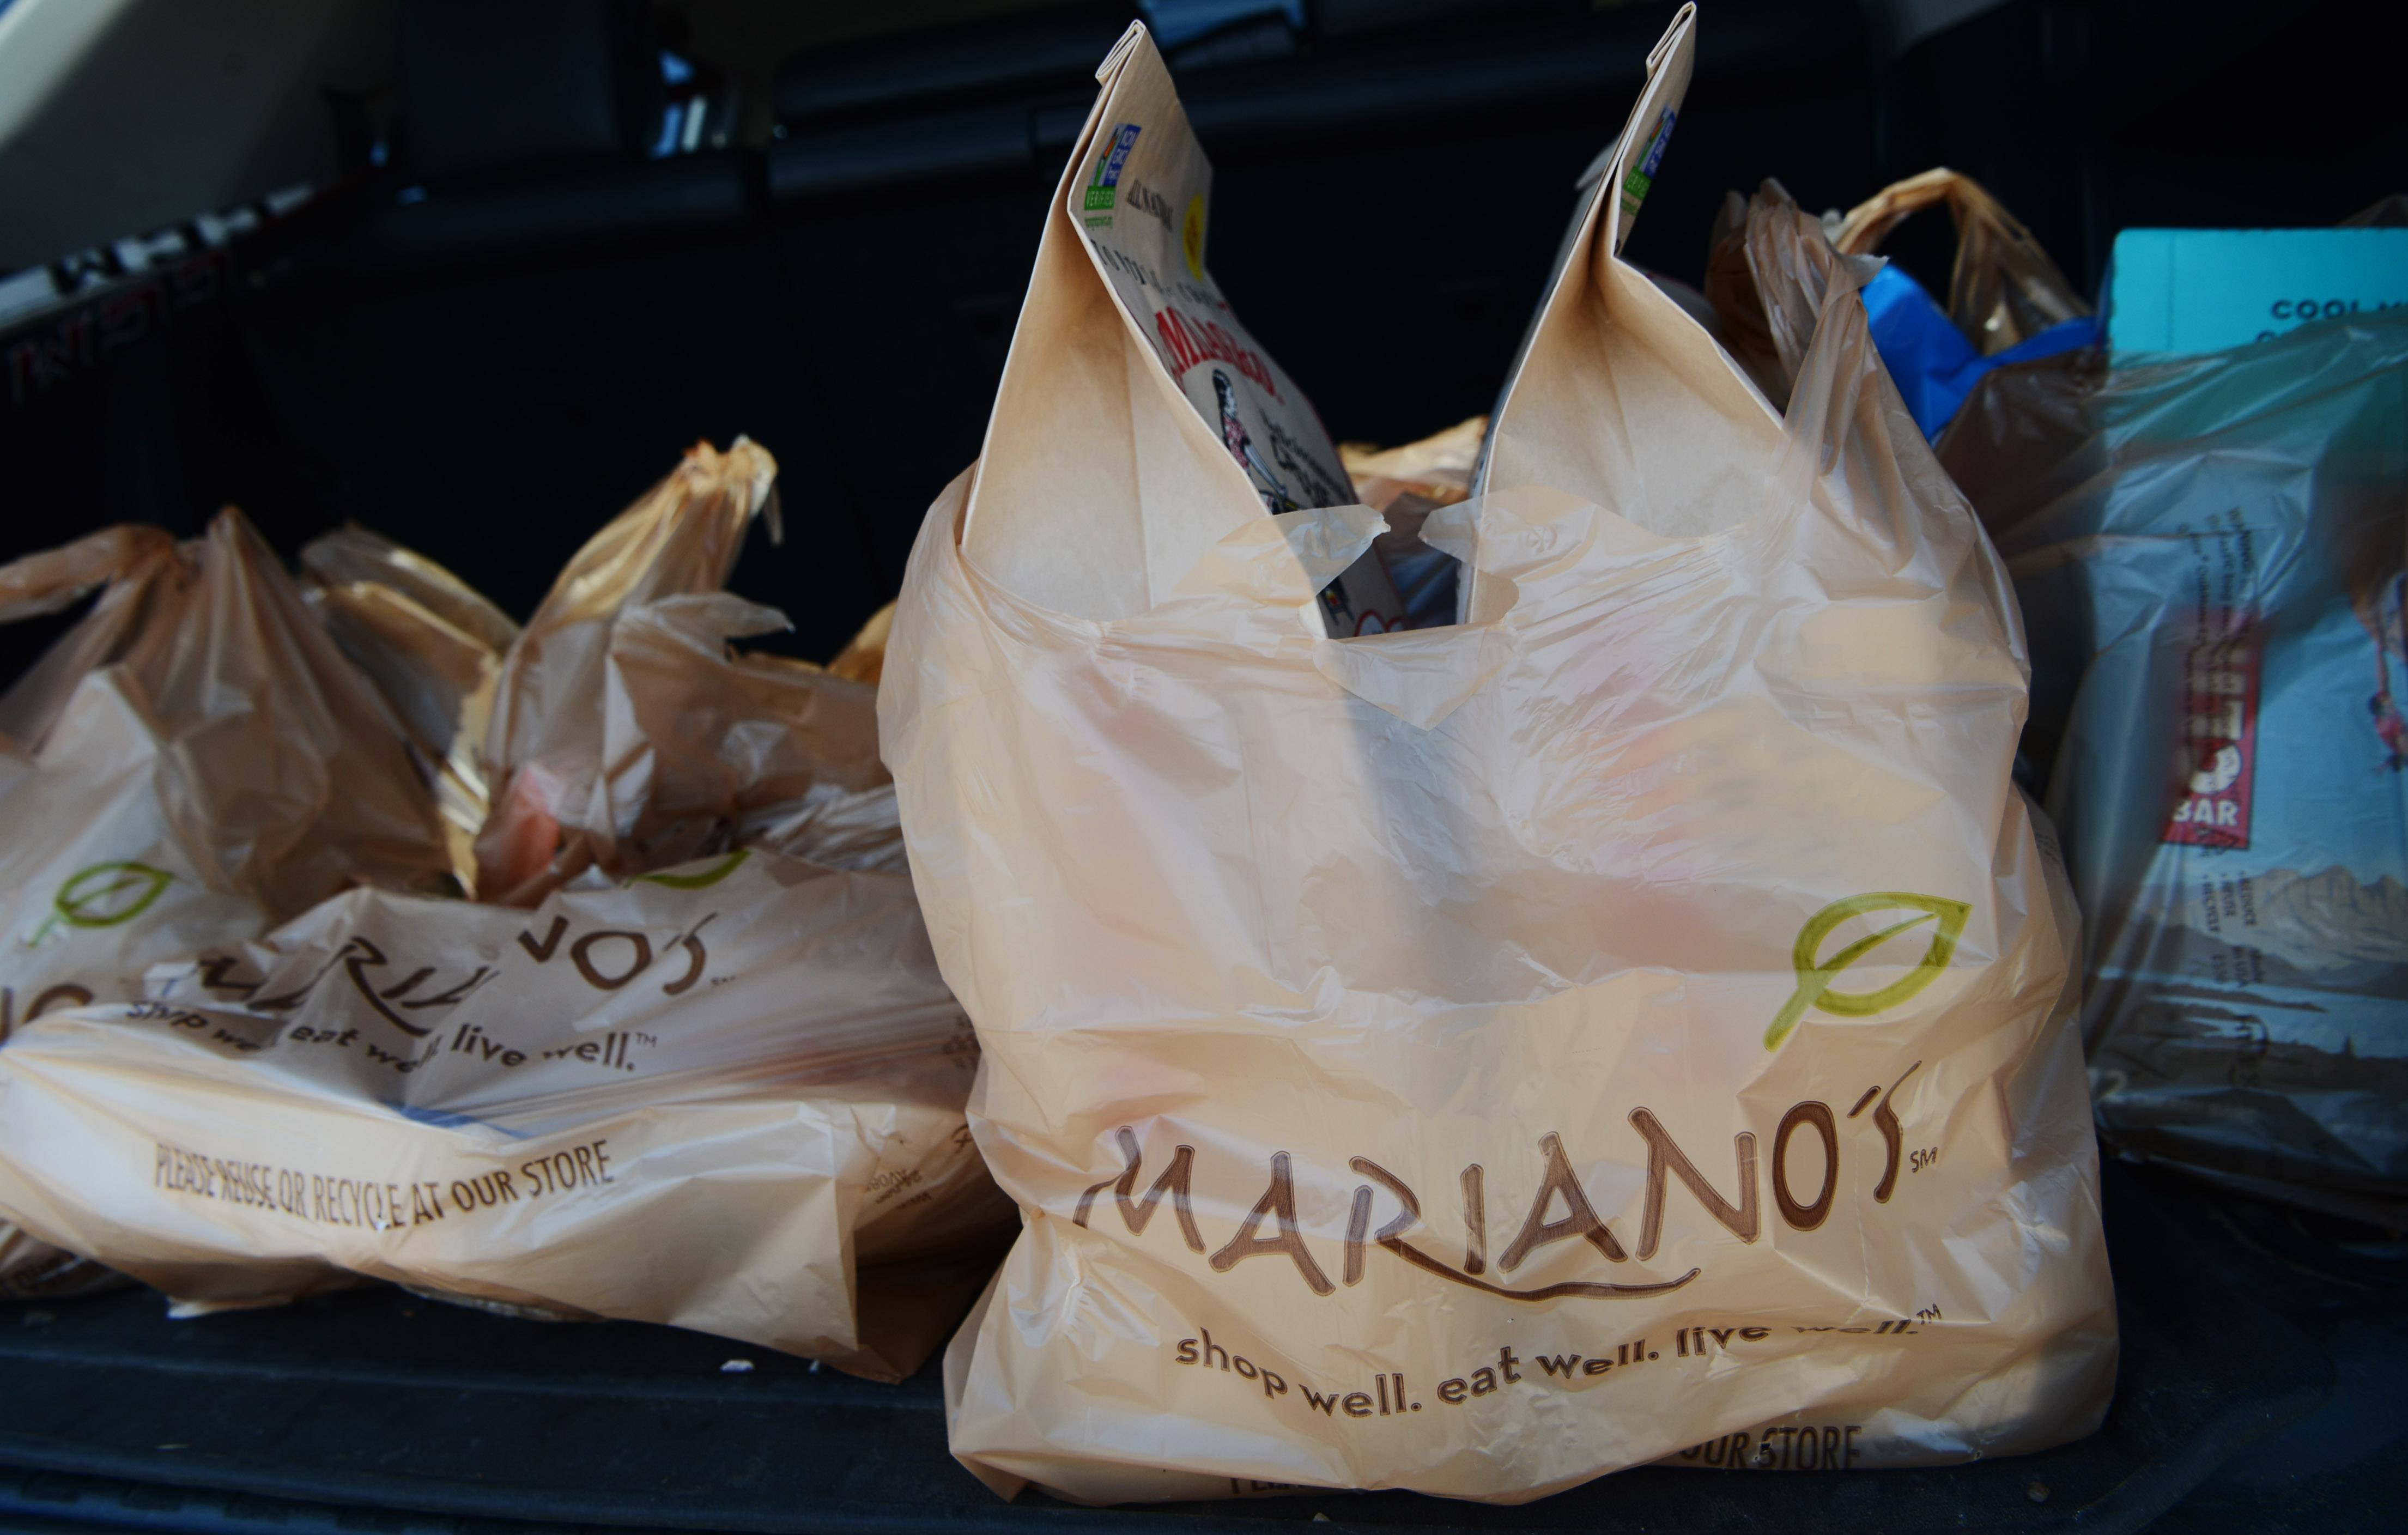 Mariano's ditching plastic bags, giving momentum to a growing trend